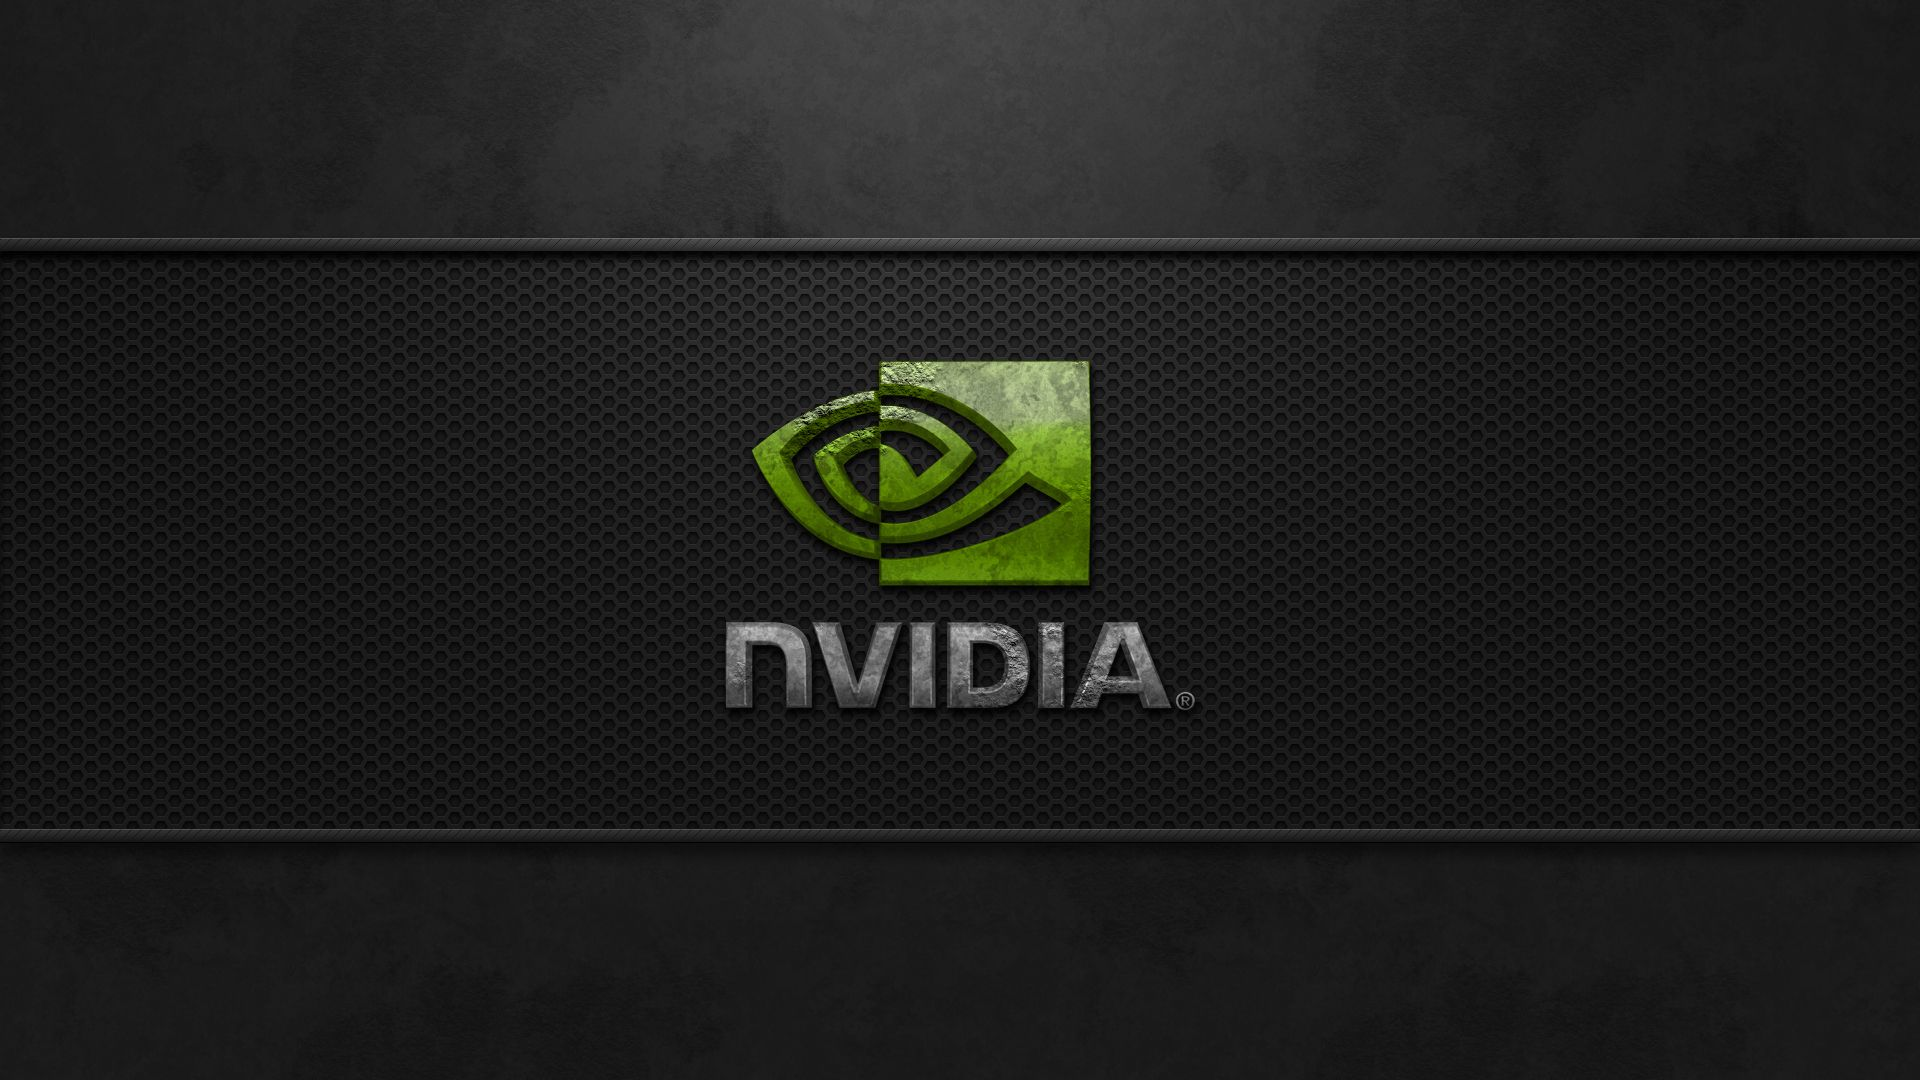 Nvidia Wallpaper Desktop Wallpapers HD Free Backgrounds 1920x1080 30